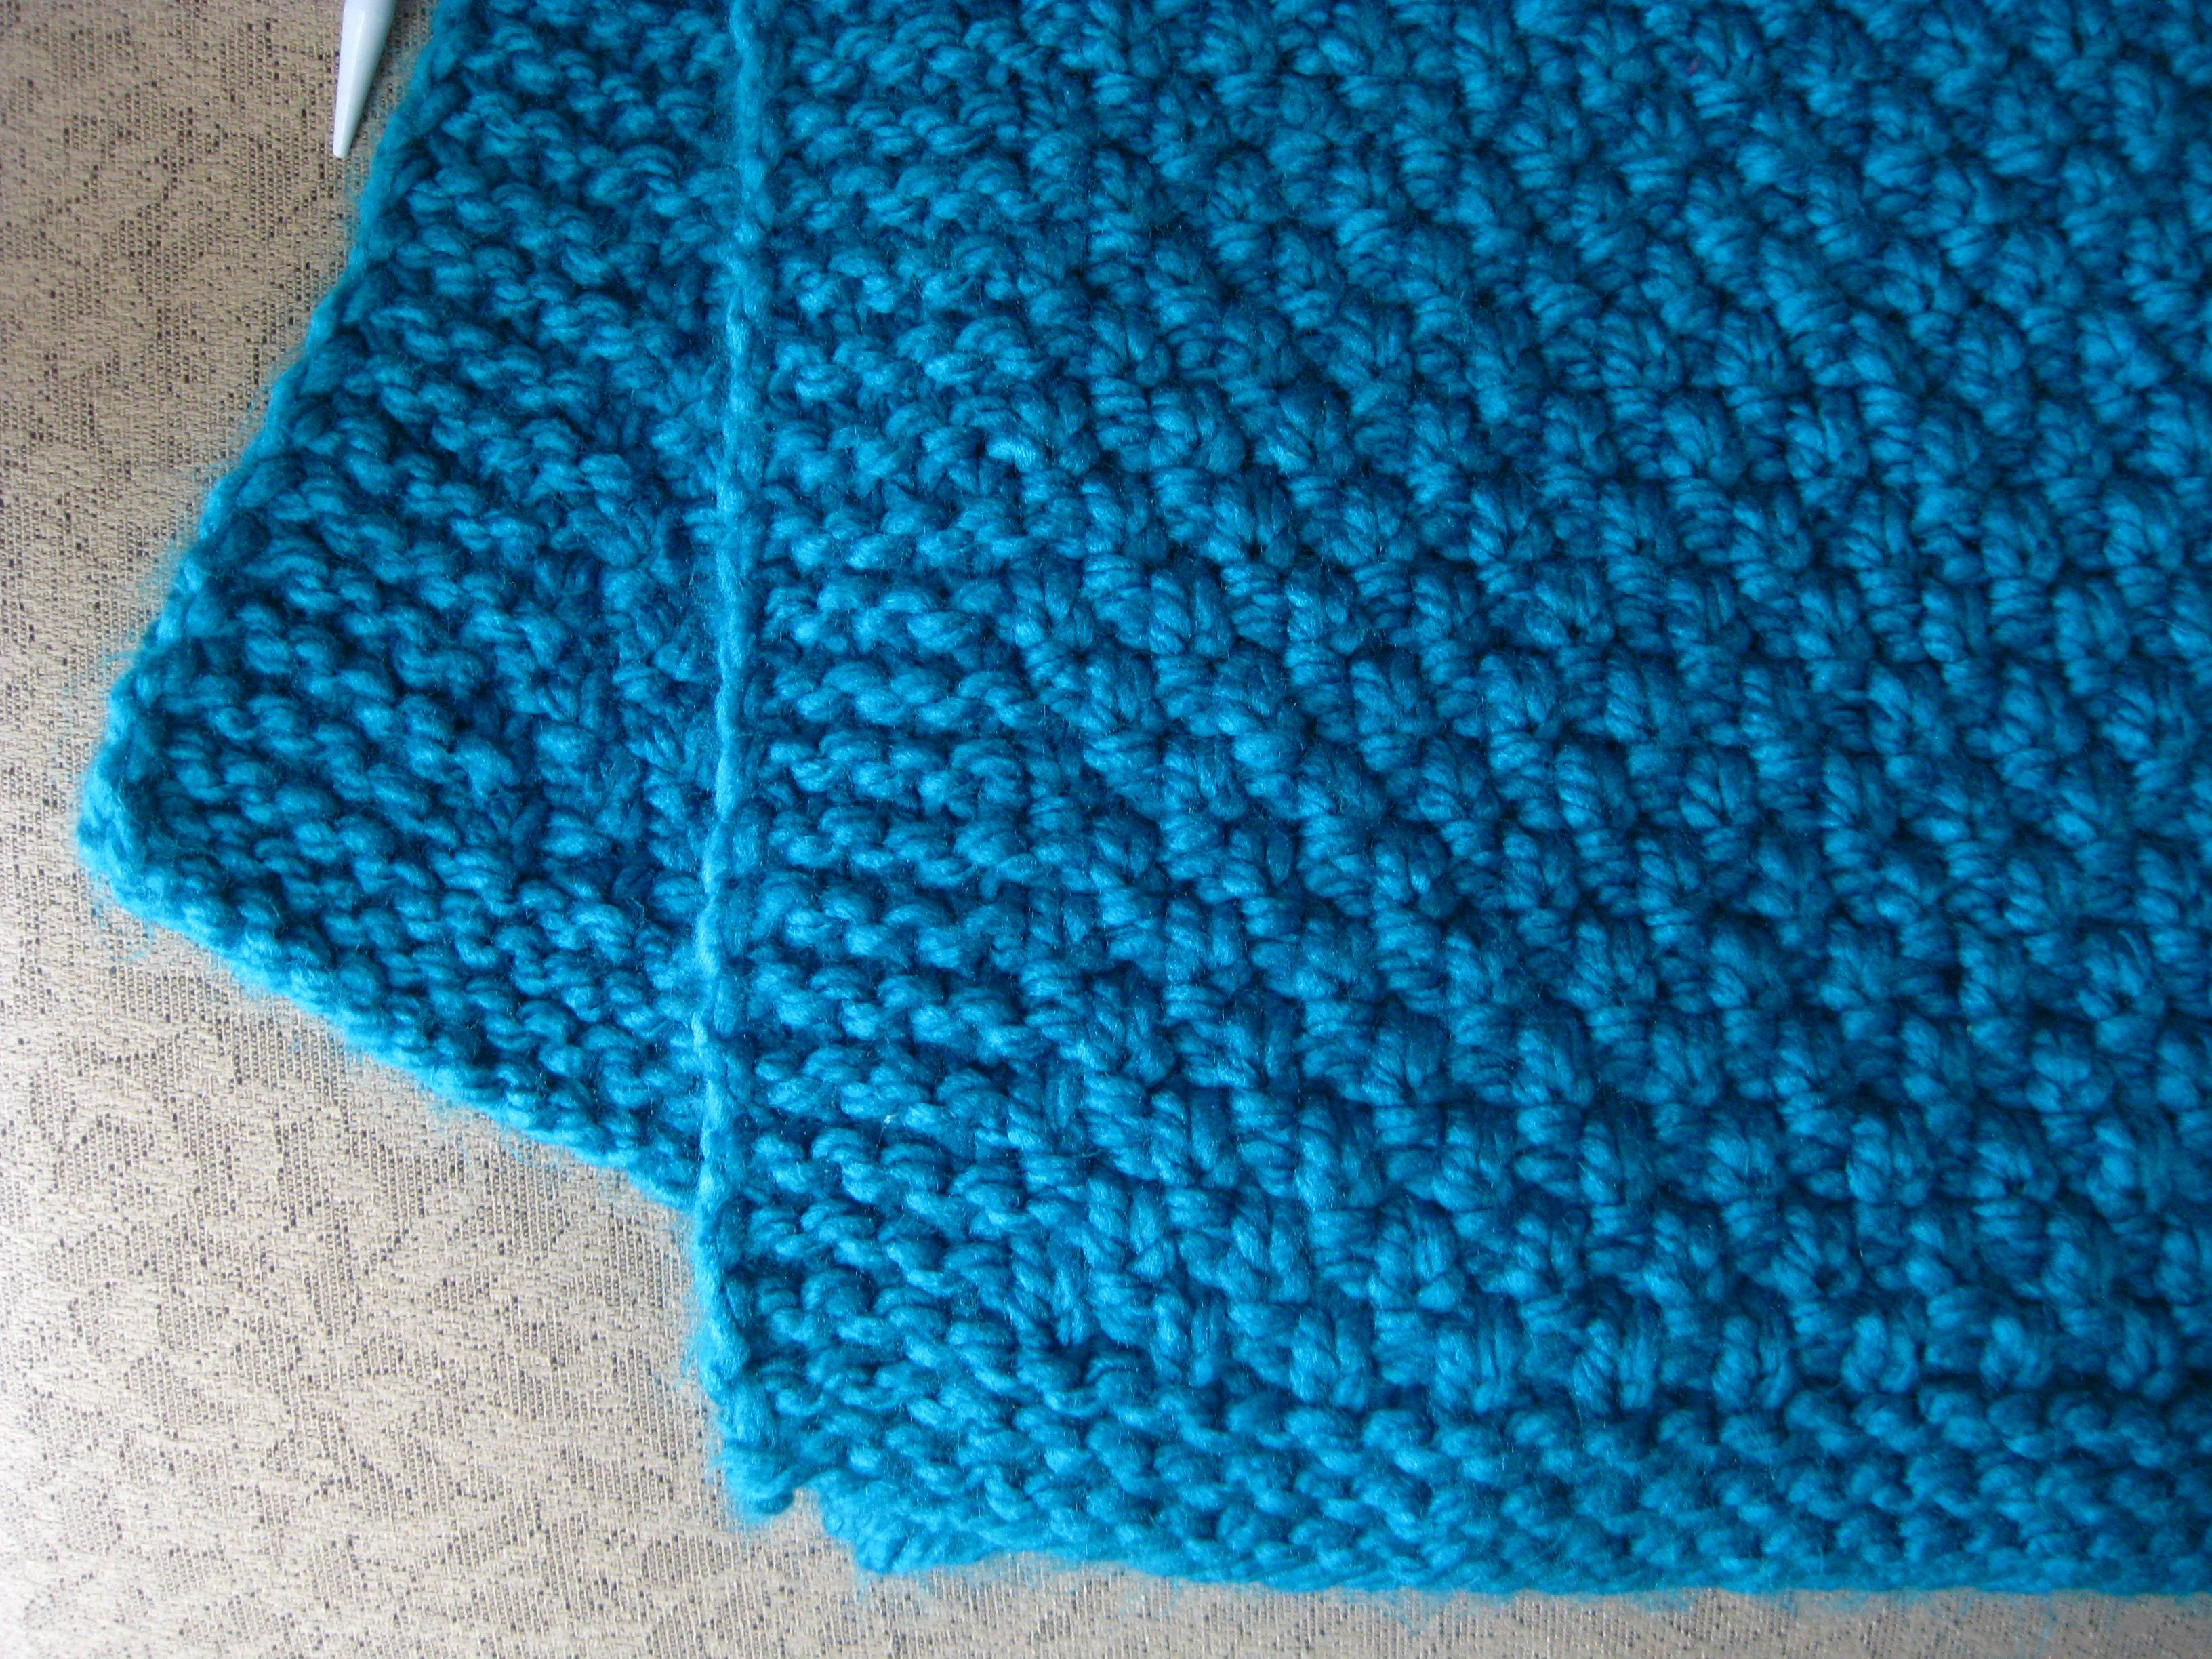 Lovely Moss Stitch Lap Afghan Pattern Afghan Stitch Of Innovative 41 Images Afghan Stitch